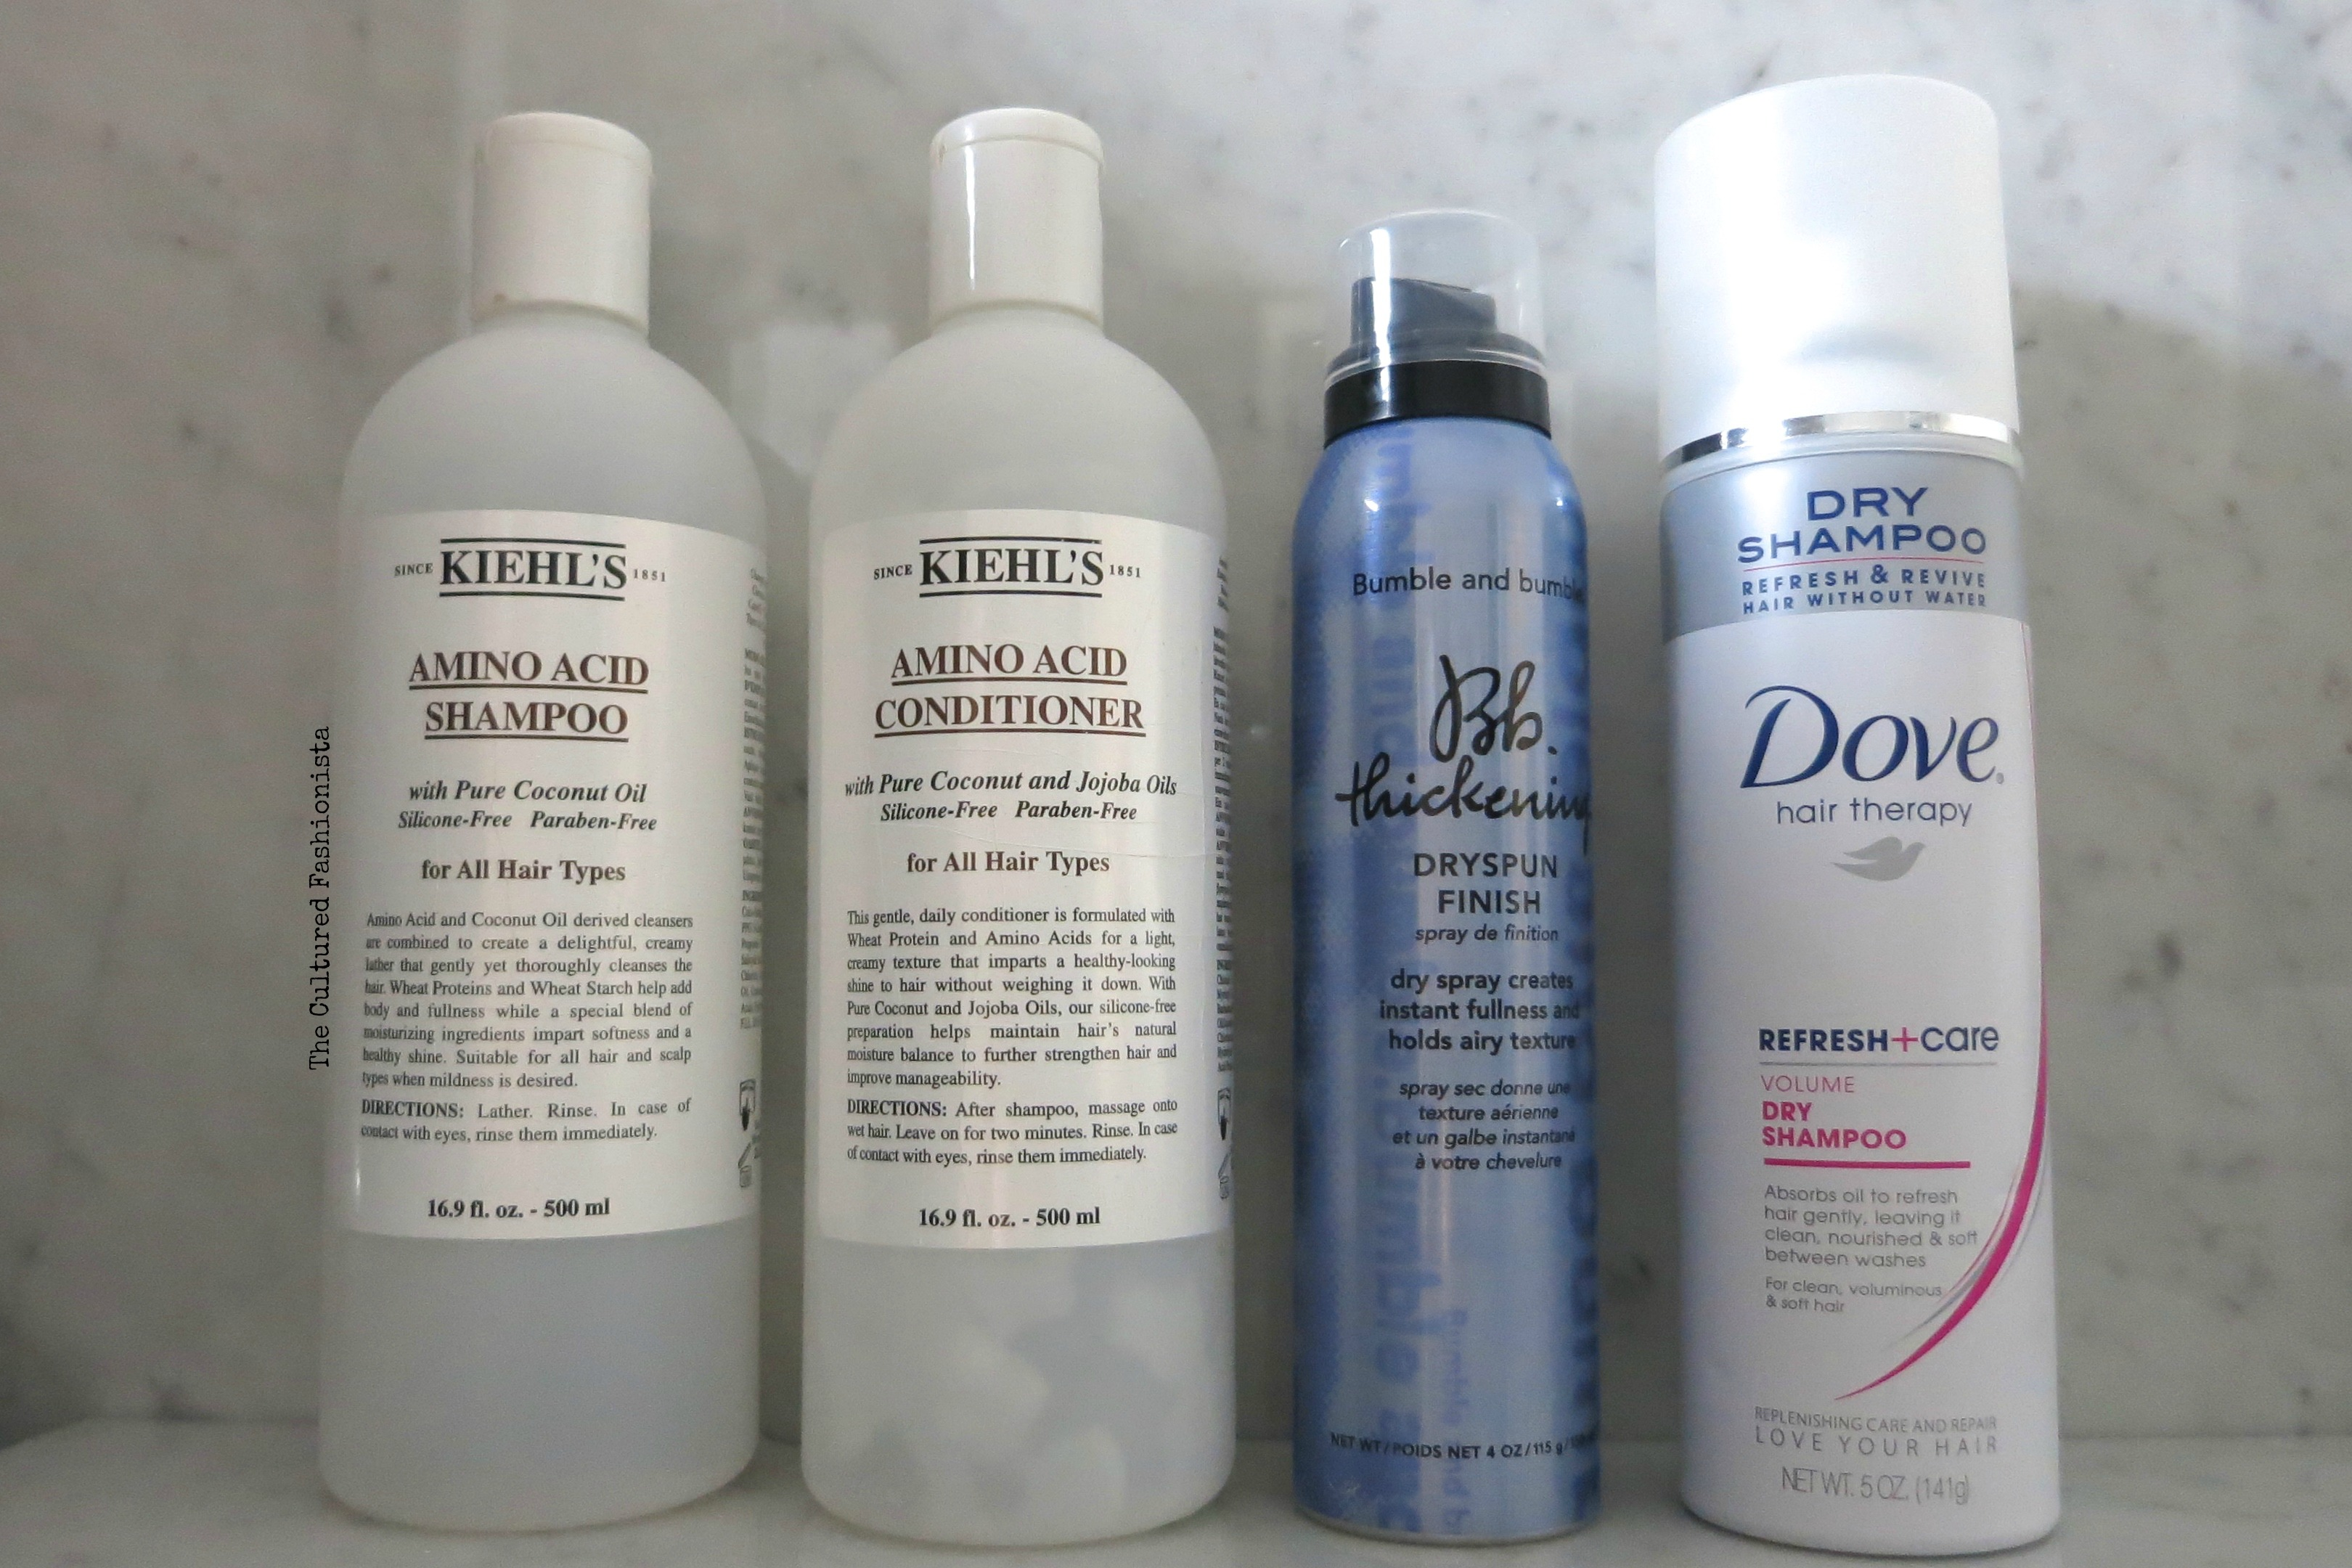 Haircare Empties The Cultured Fashionista Kiehls Amino Acid Conditioner